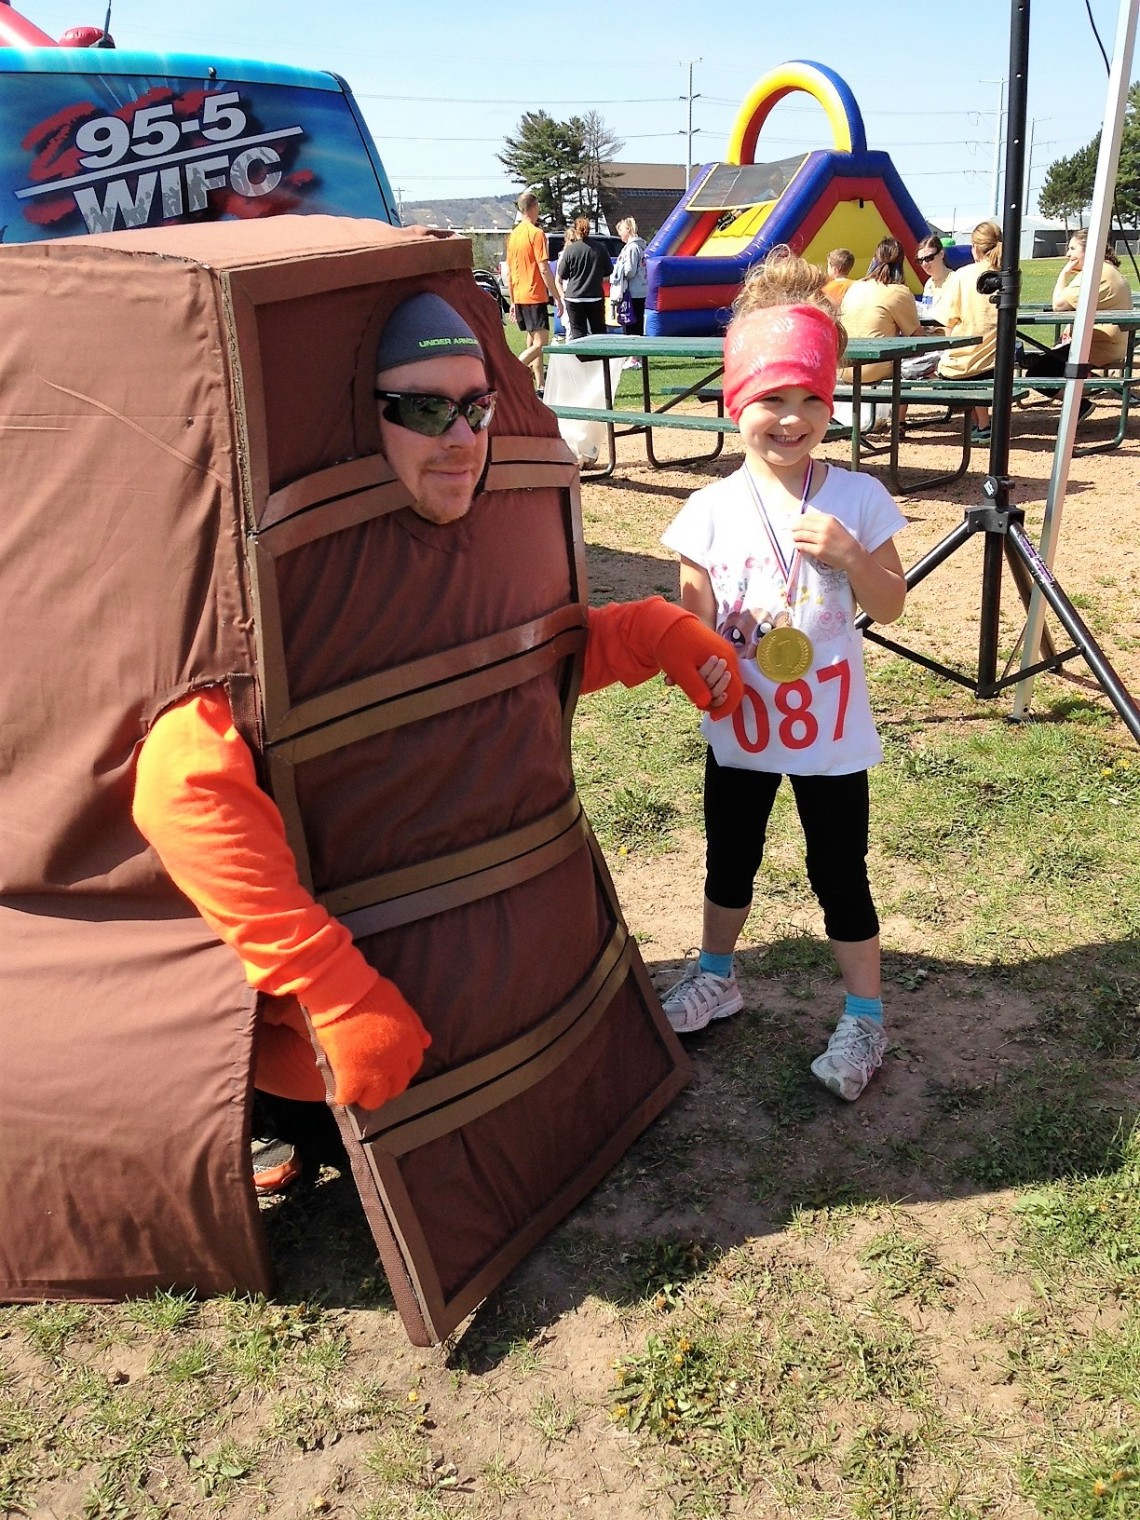 5K-Chocolate man and little girl